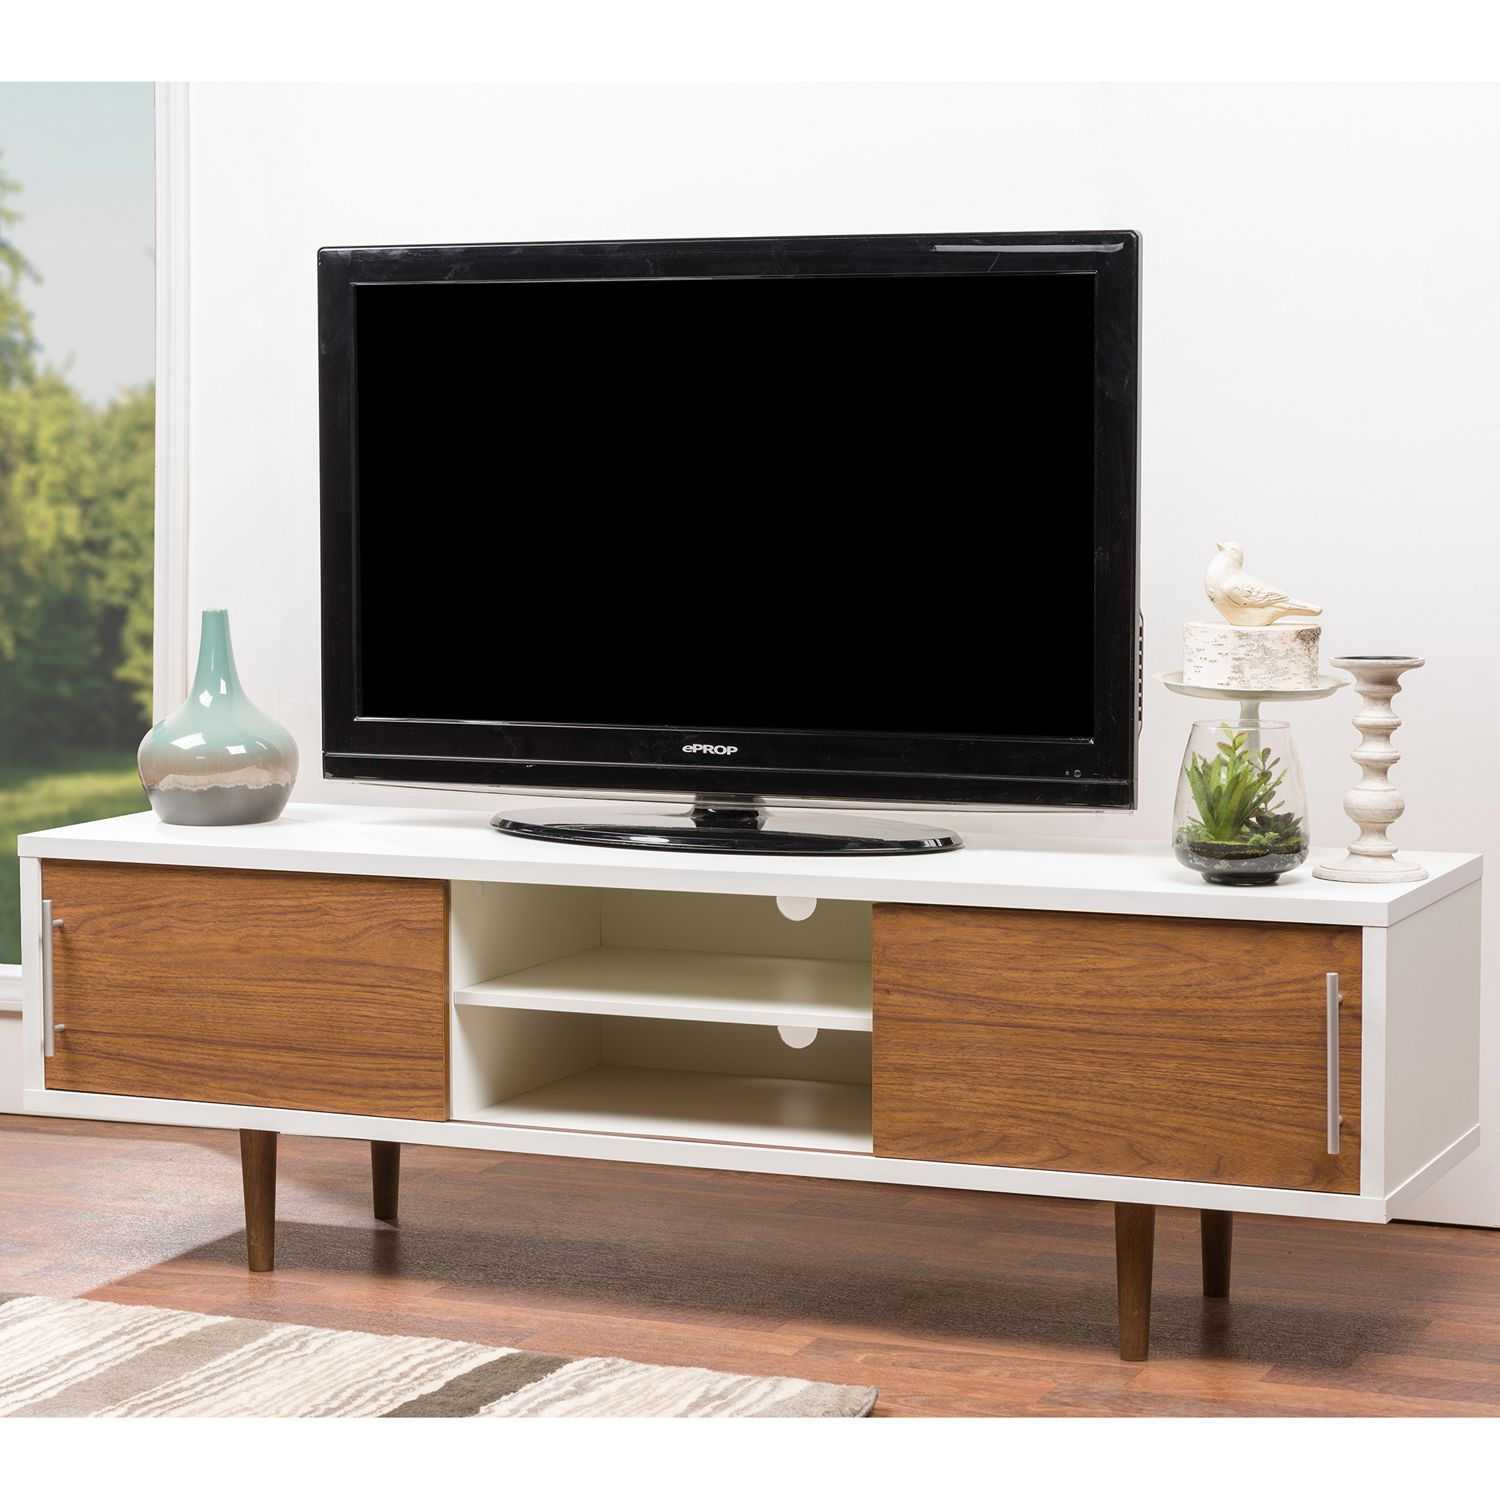 Gemini Wood Contemporary TV Stand   Overstock Shopping   Great Deals On  Baxton Studio Entertainment Centers